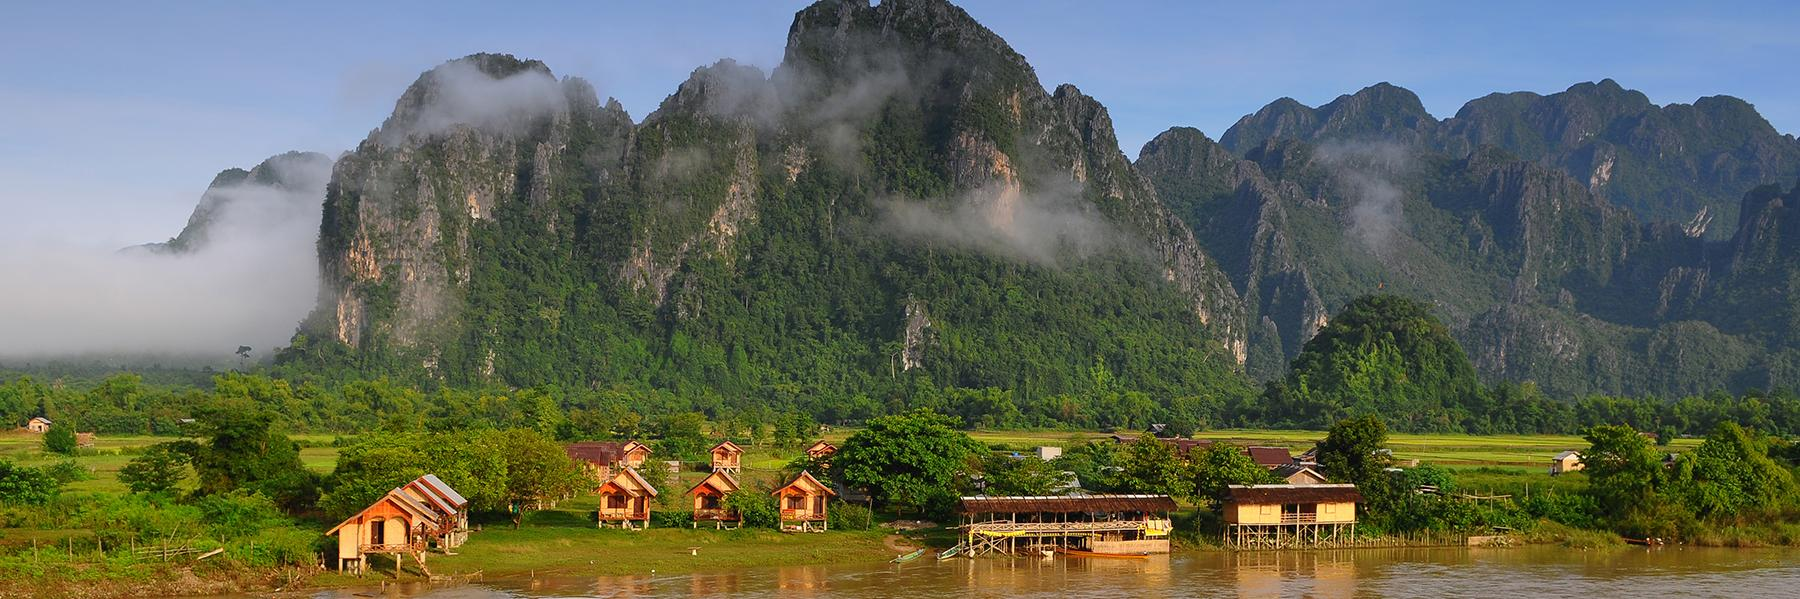 Contrasts of Laos and Cambodia